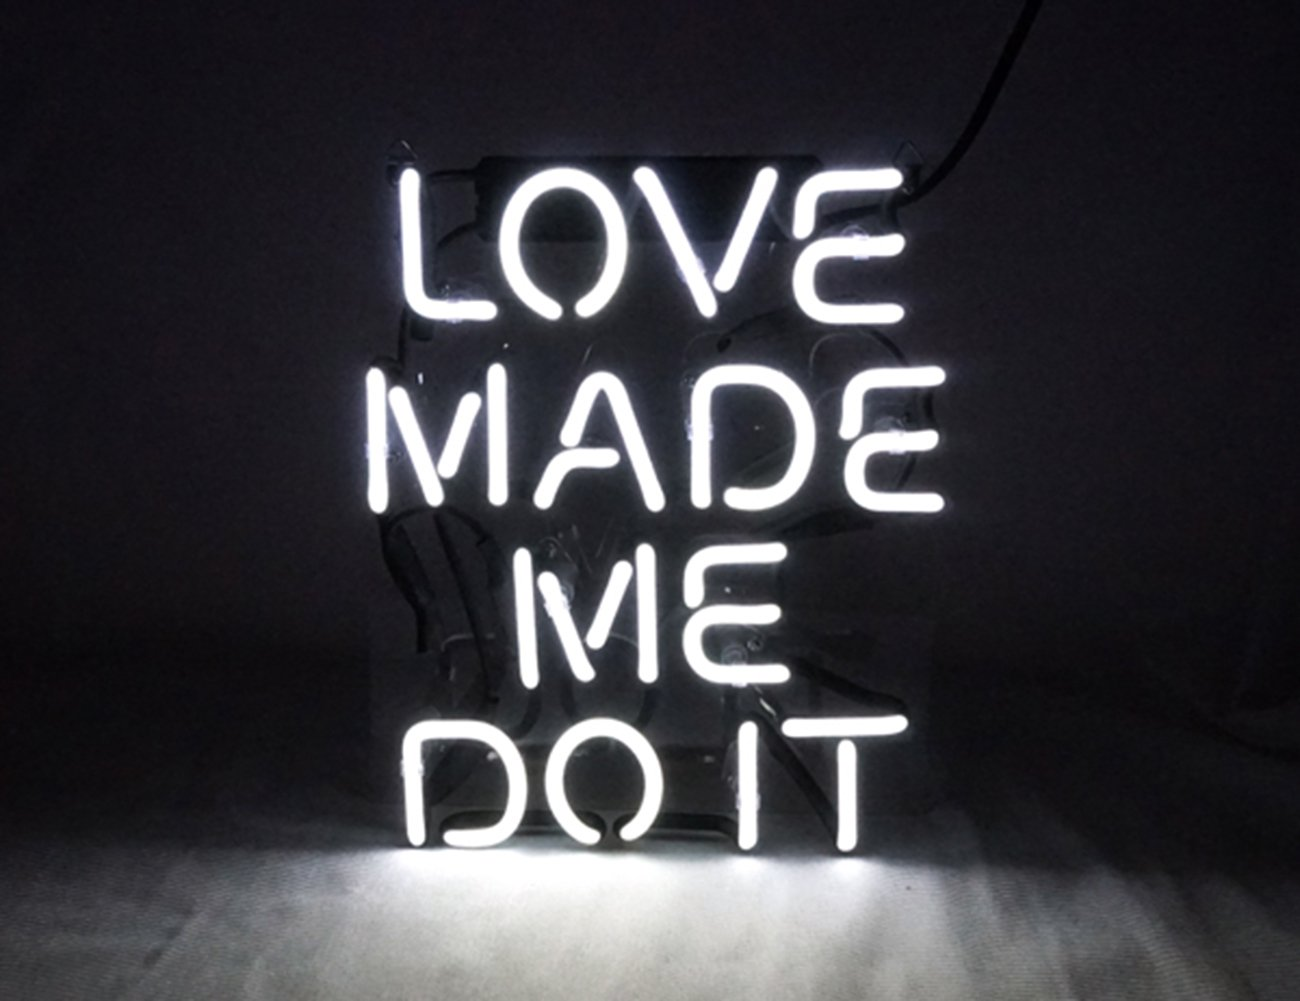 Love Made Me Doit Cool Glass Neon sign Led Lamp Night Light Display Gift 8.7'' x 10.2'' for Home Decoration Beer Pub Hotel Beach Recreational Game Room